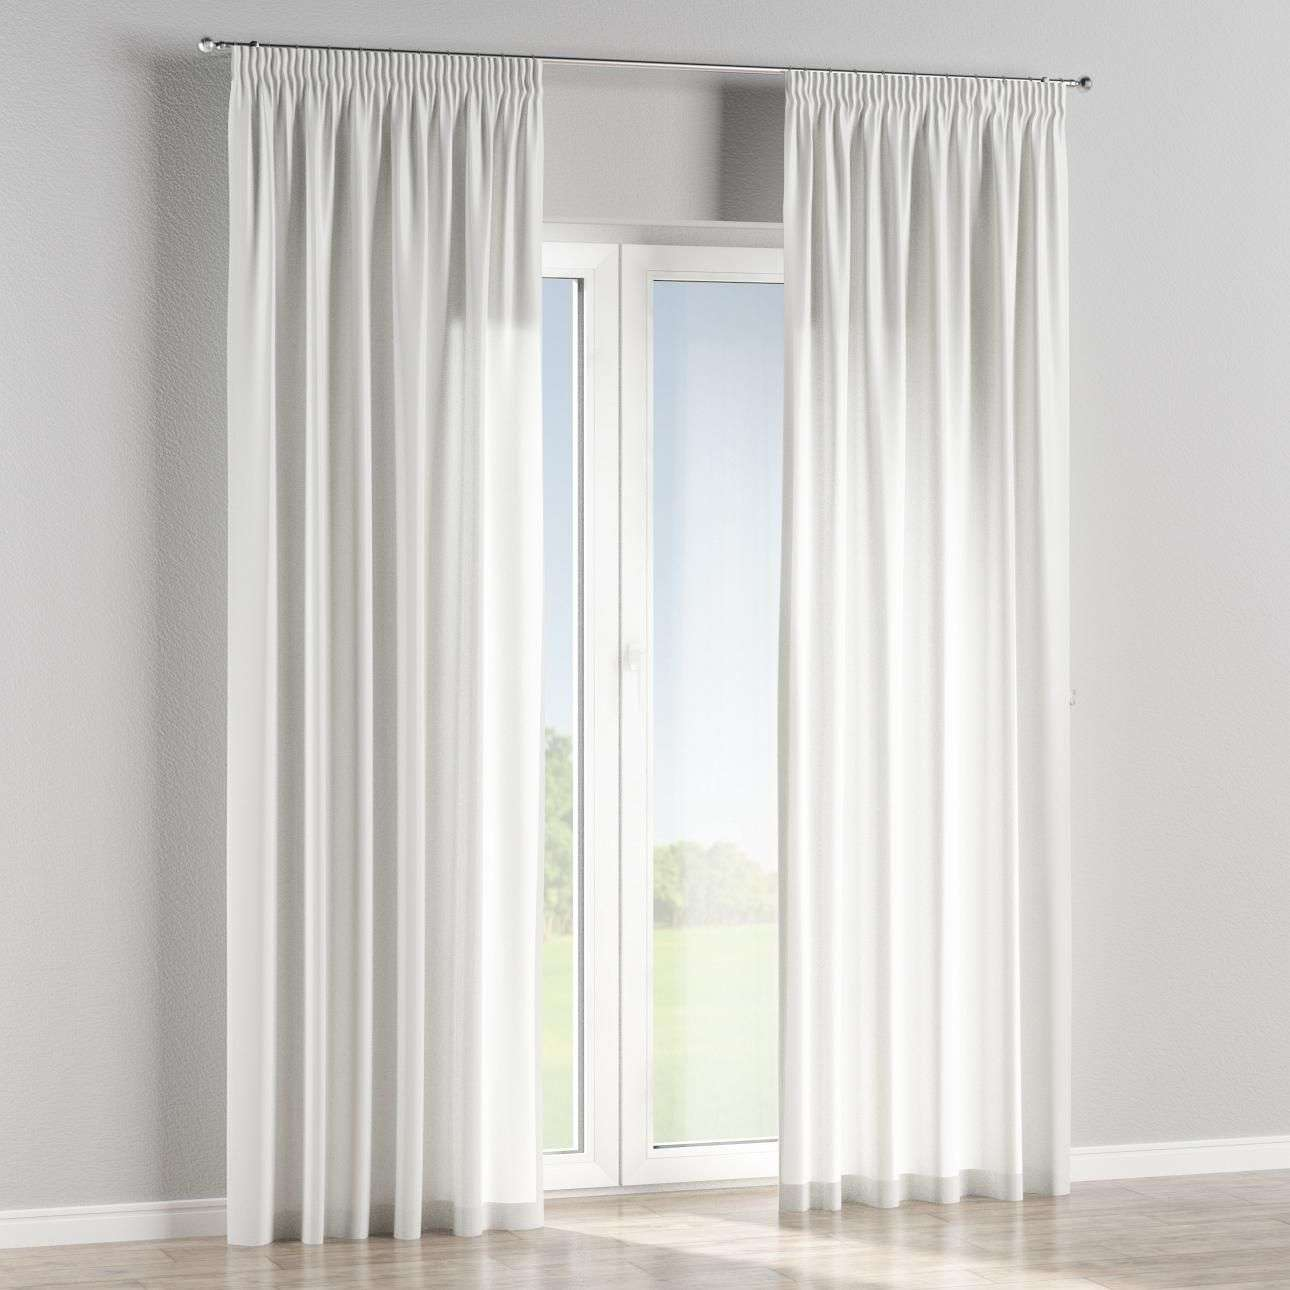 Pencil pleat curtains in collection Fleur , fabric: 137-22